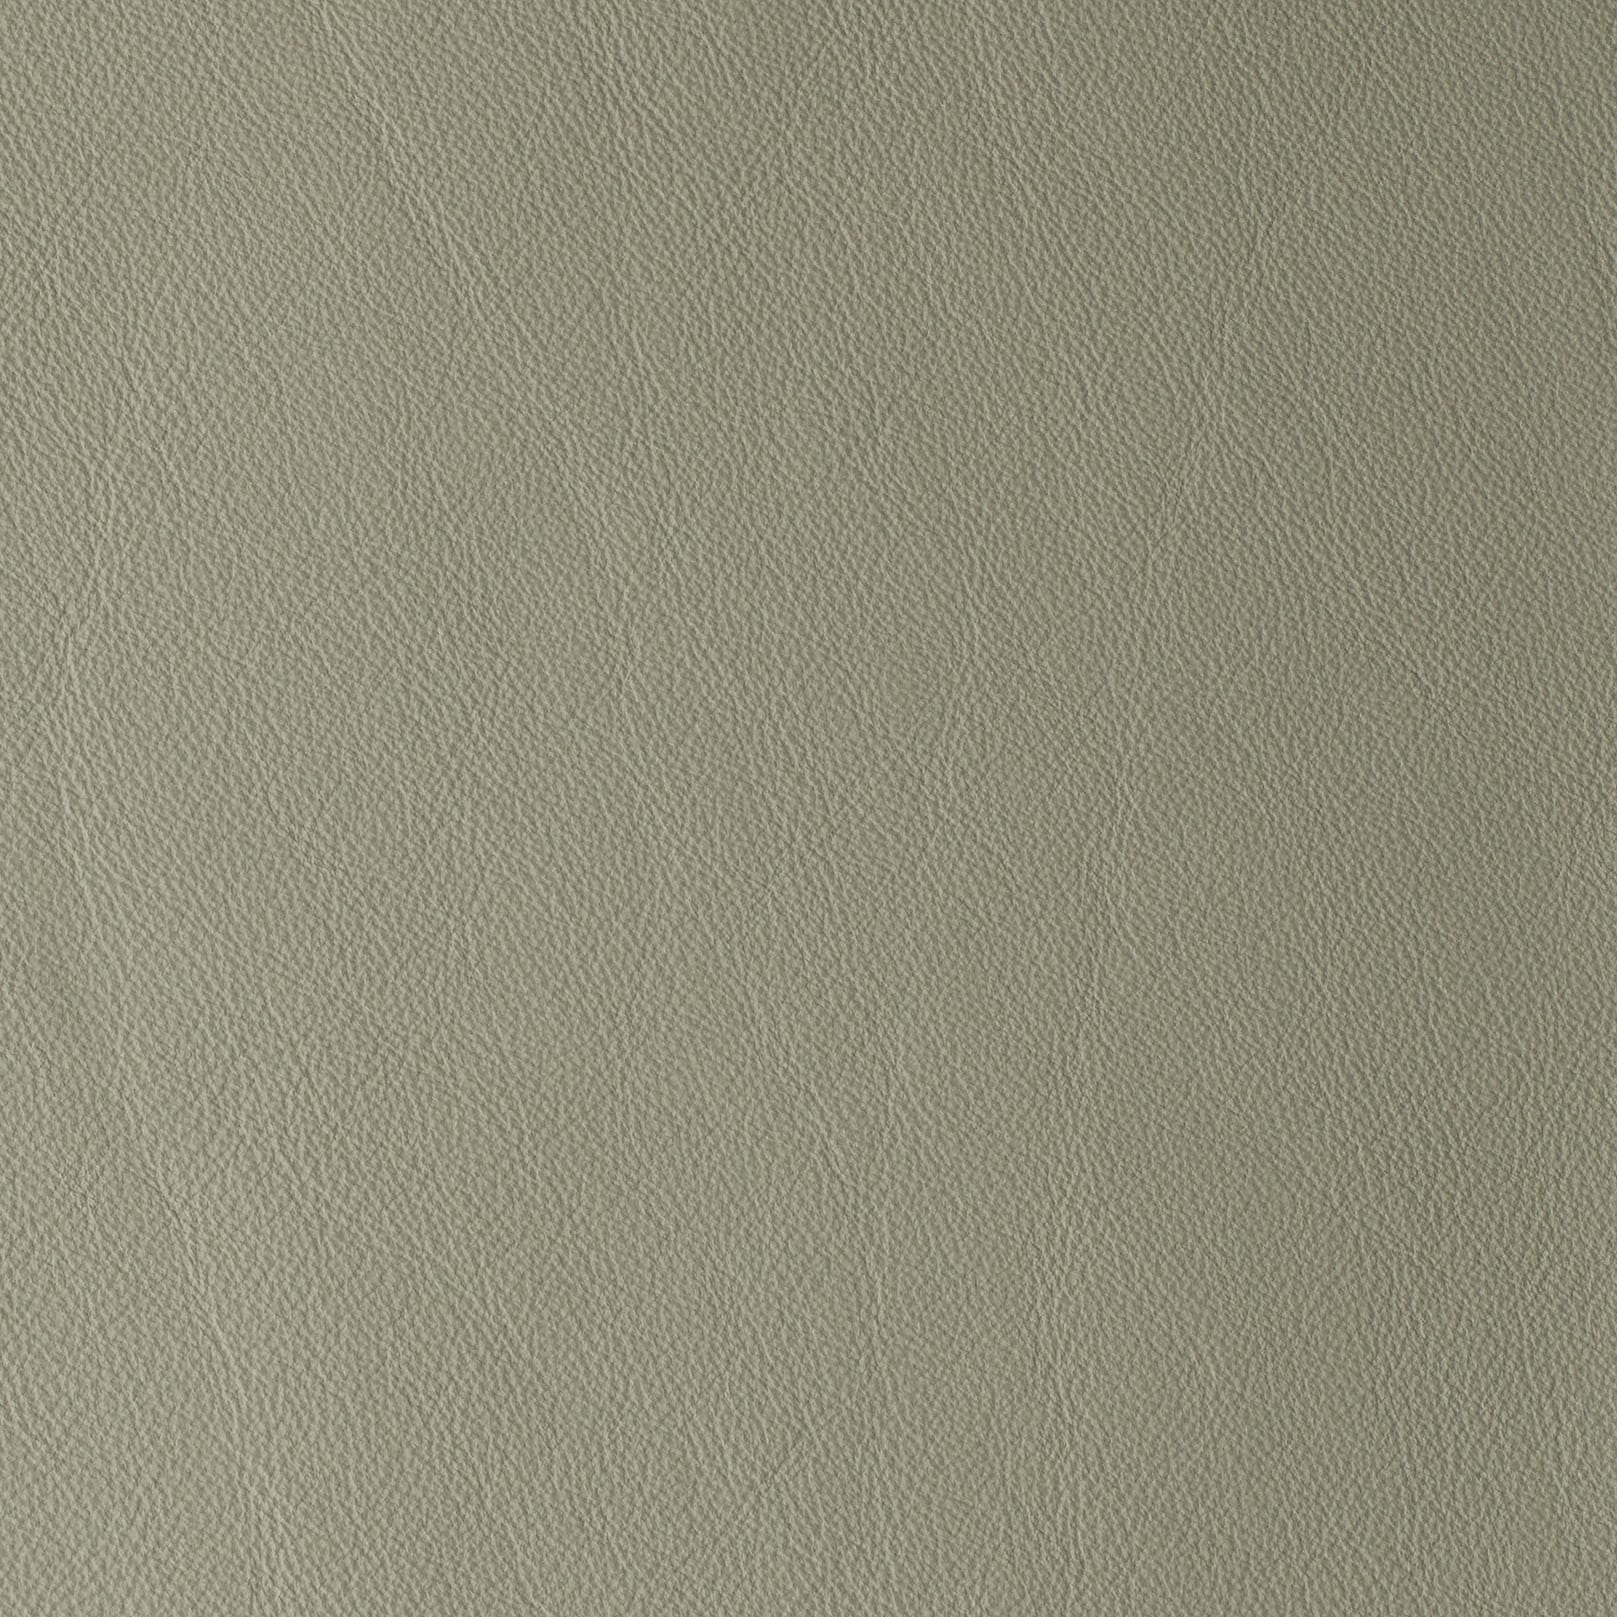 LAGUNA PEARL 08630 - fabric finishes